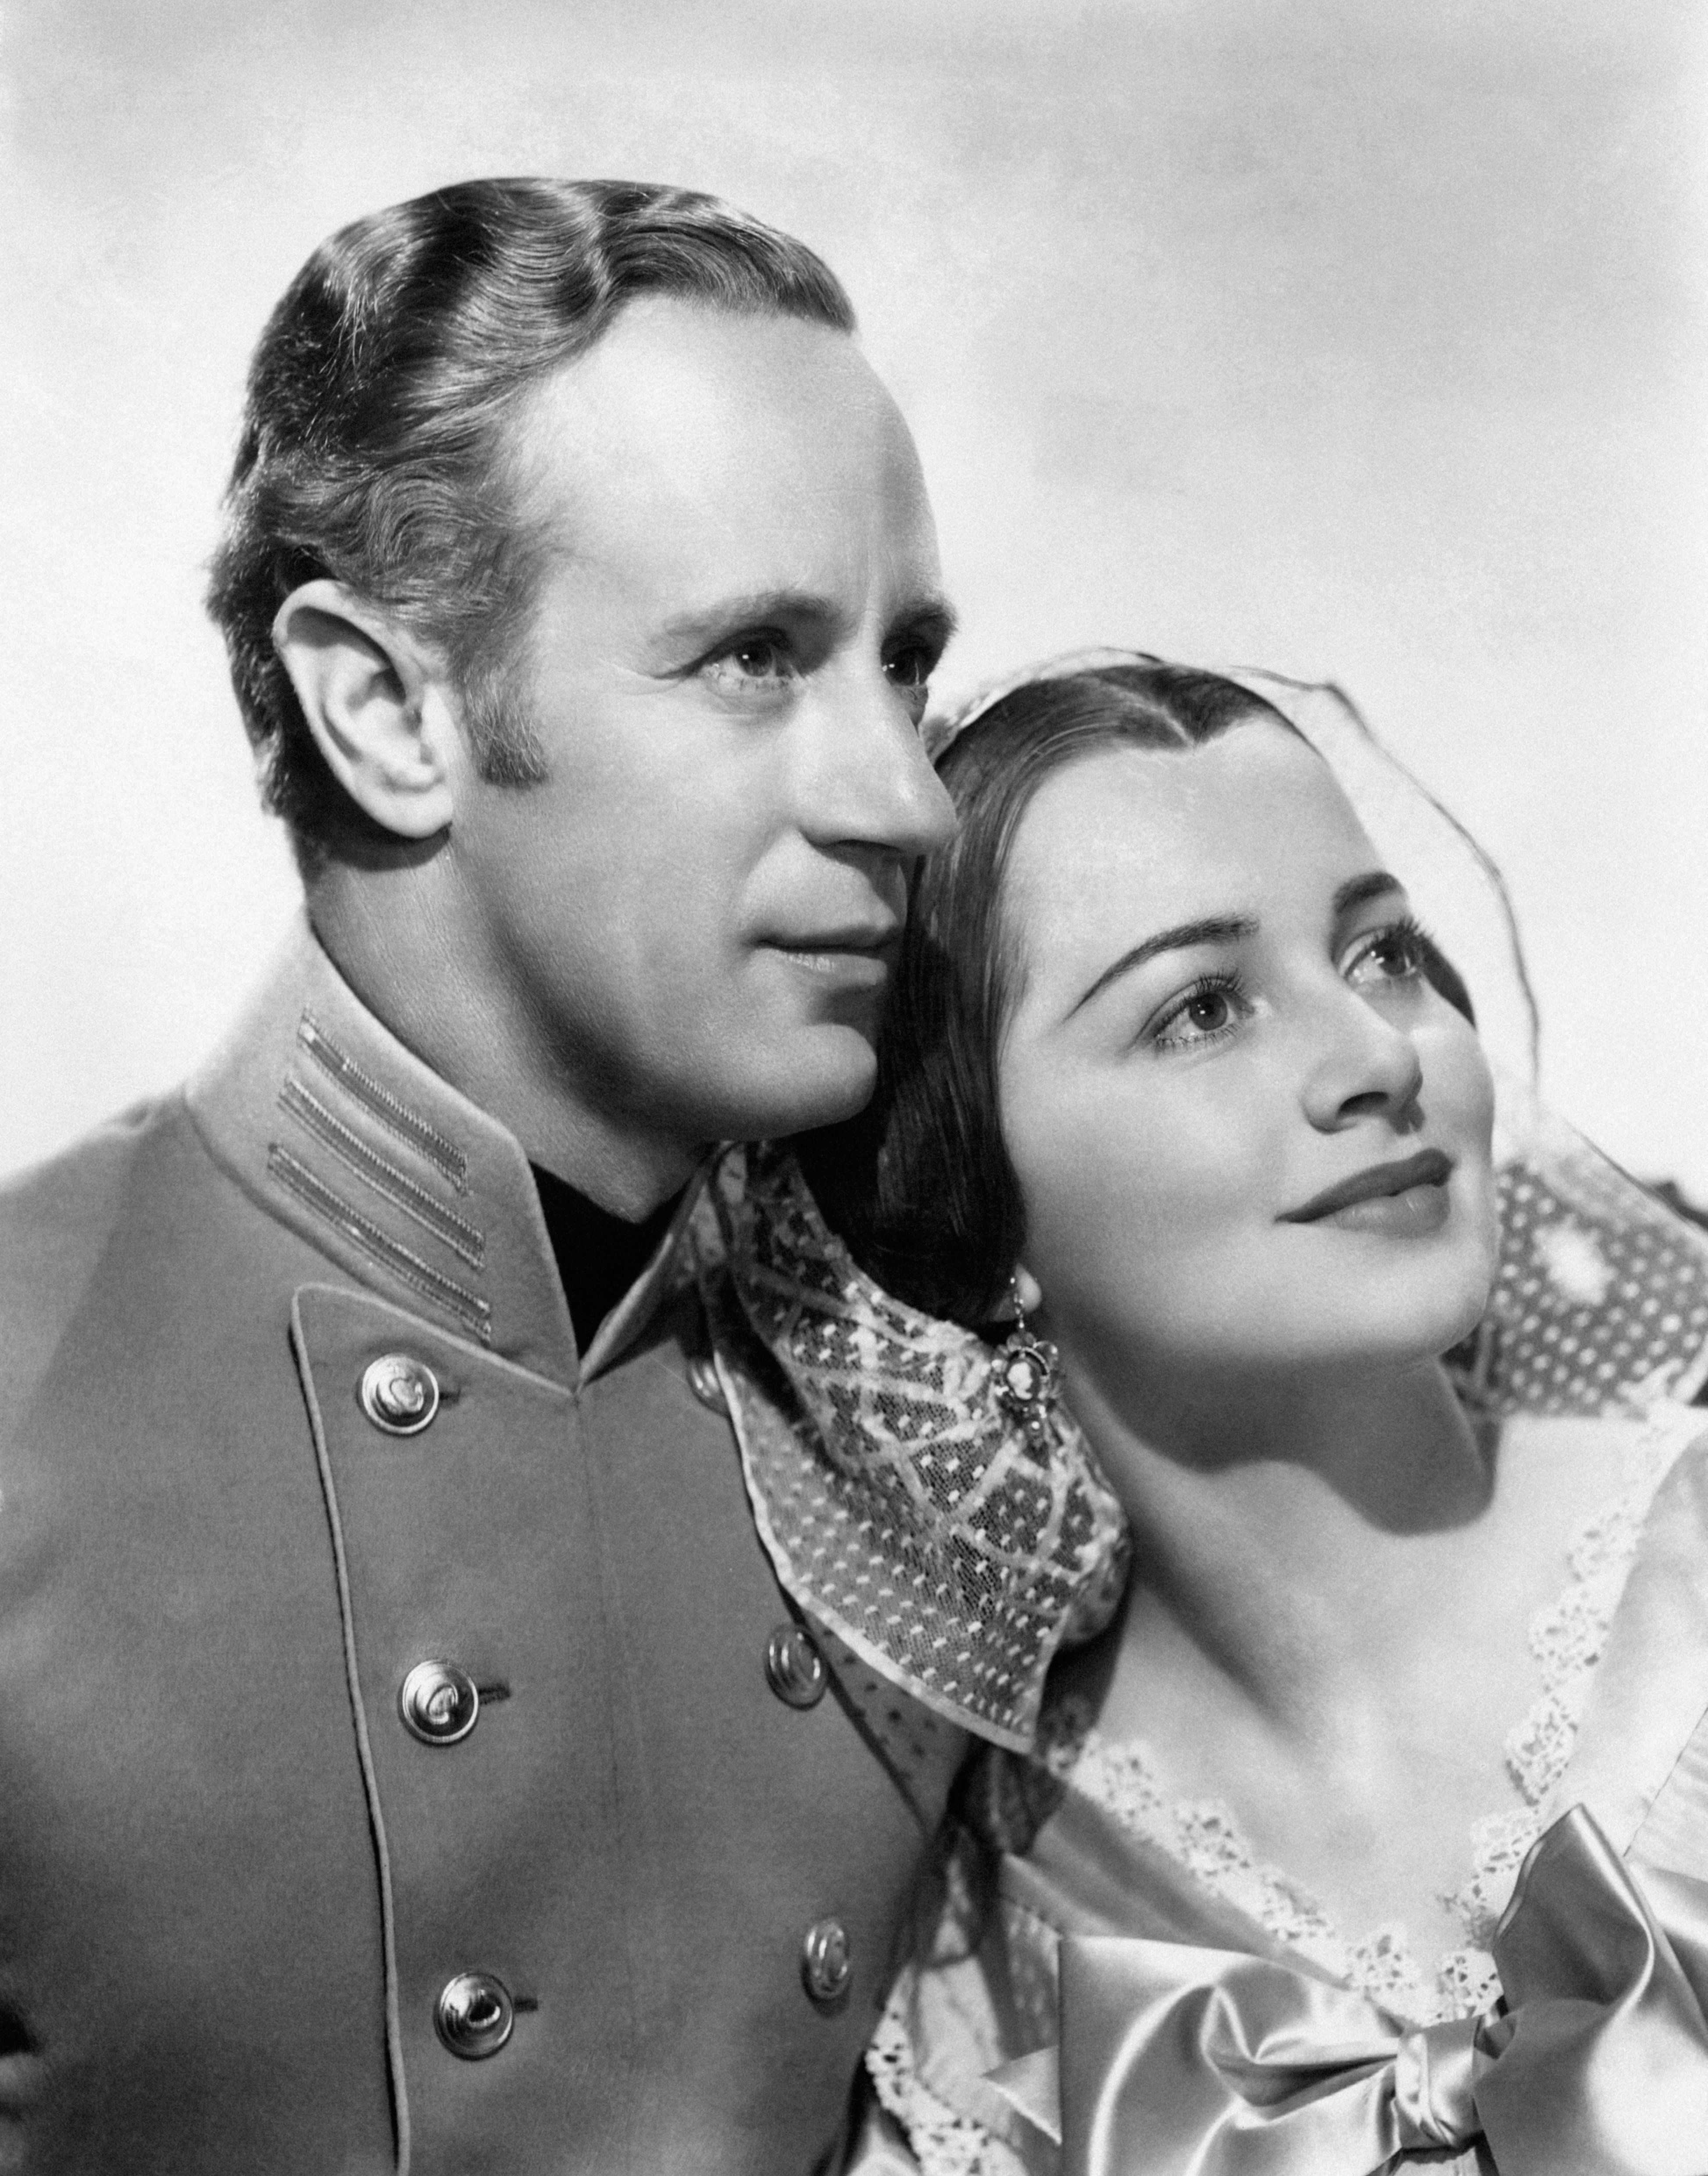 Half-length portrait of smiling actors Leslie Howard and Olivia De Havilland, who play the roles of Ashley Wilkes and Melanie Hamilton, wearing stage costumes in a scene from the movie Gone with the Wind by Victor Fleming. United States, 1939. (Photo by Mondadori Portfolio via Getty Images)